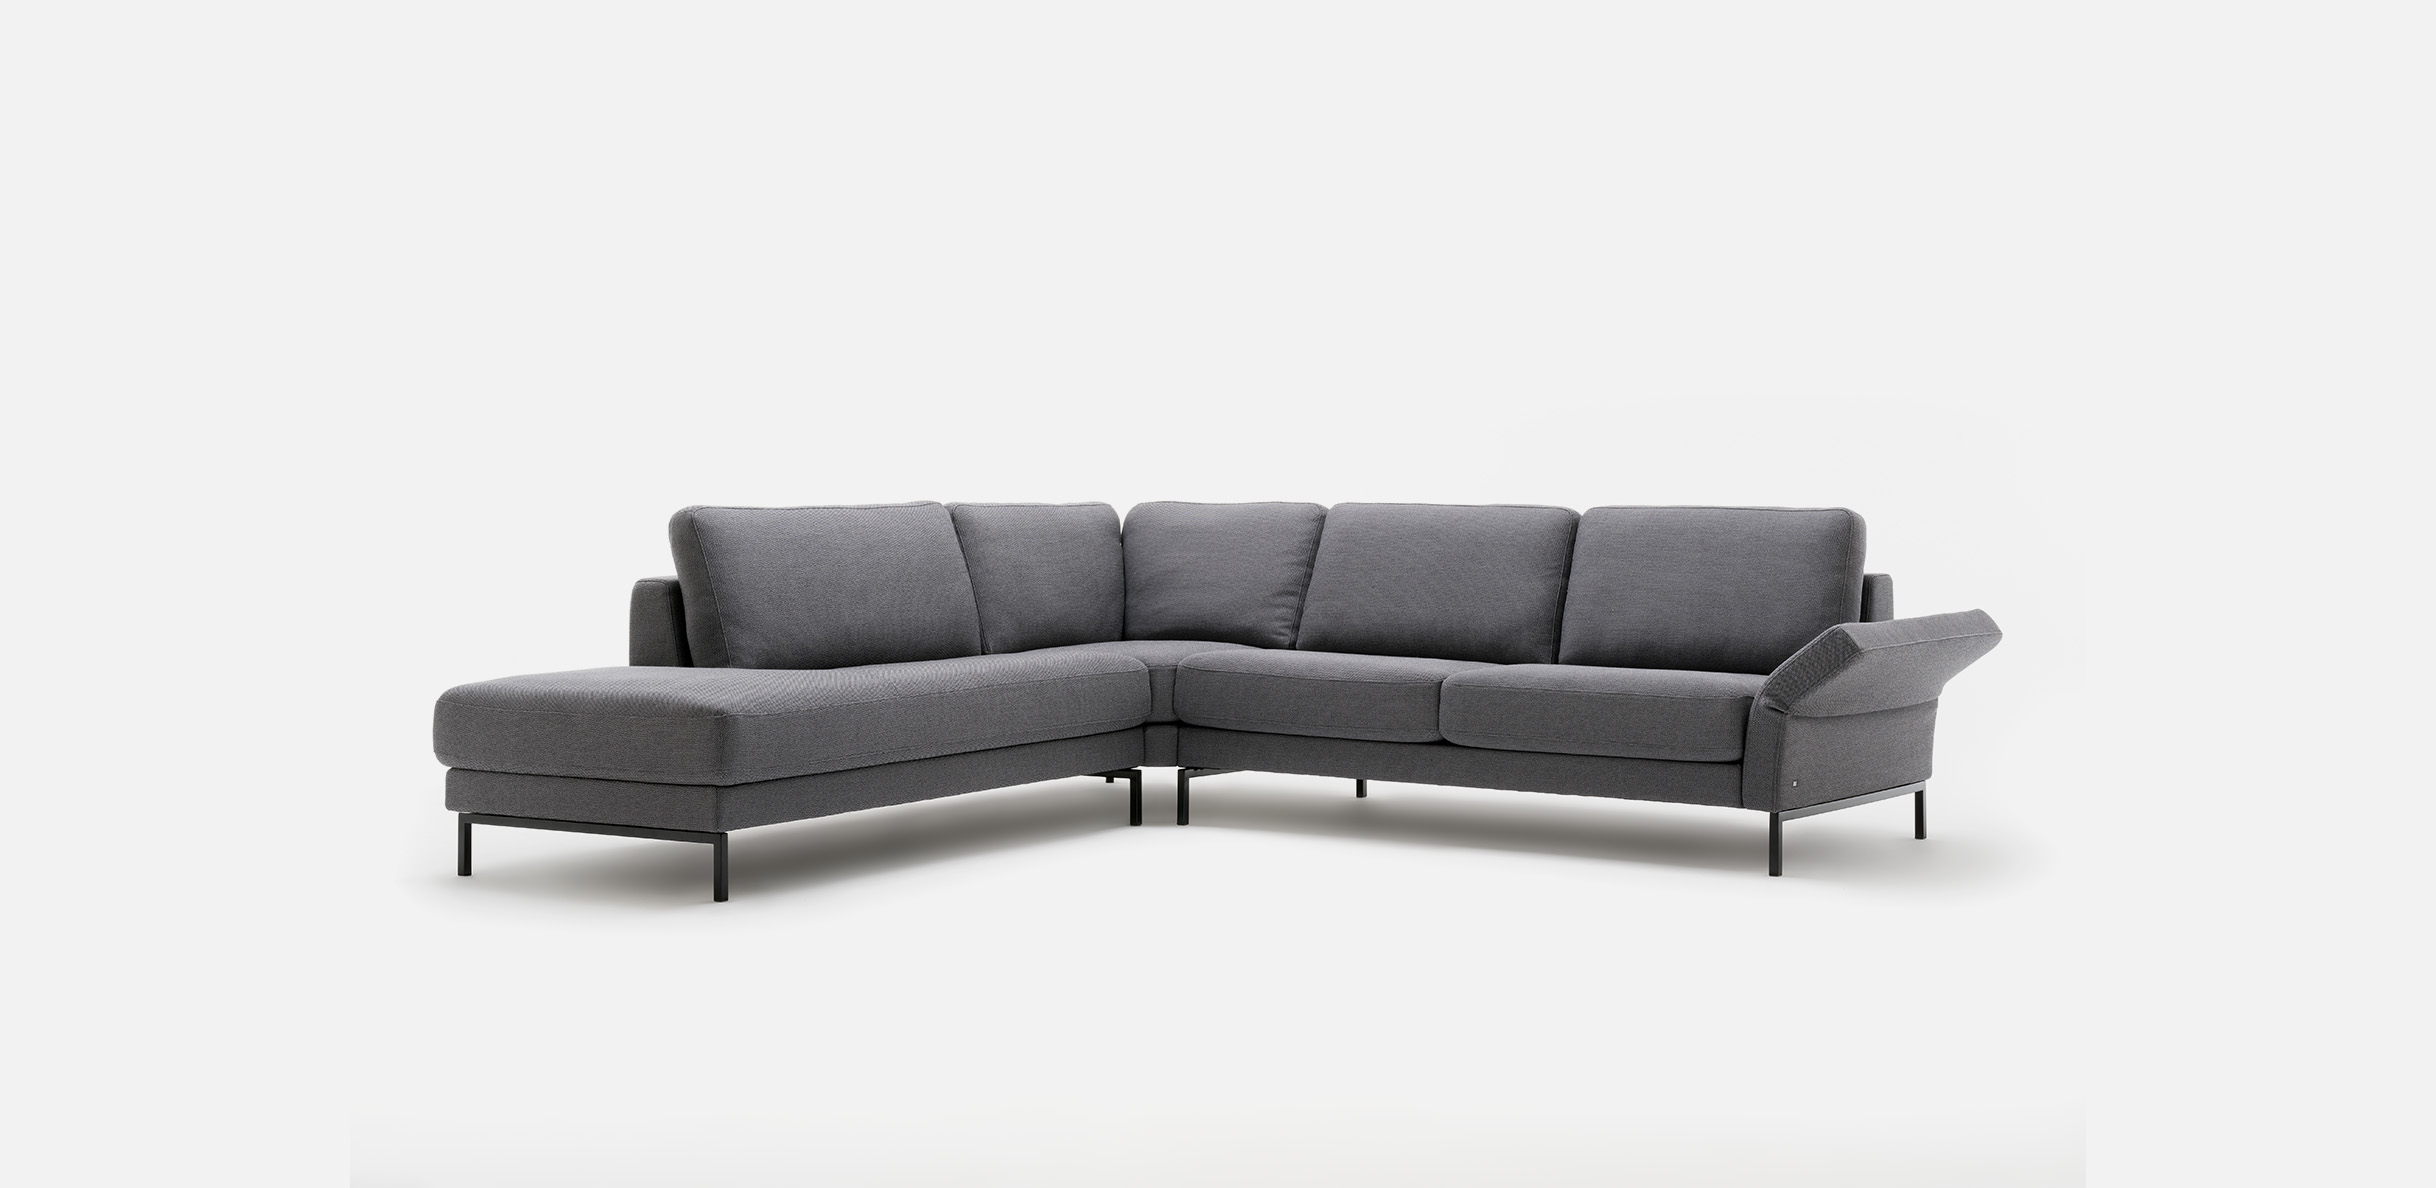 Benz Couch Ego 2019